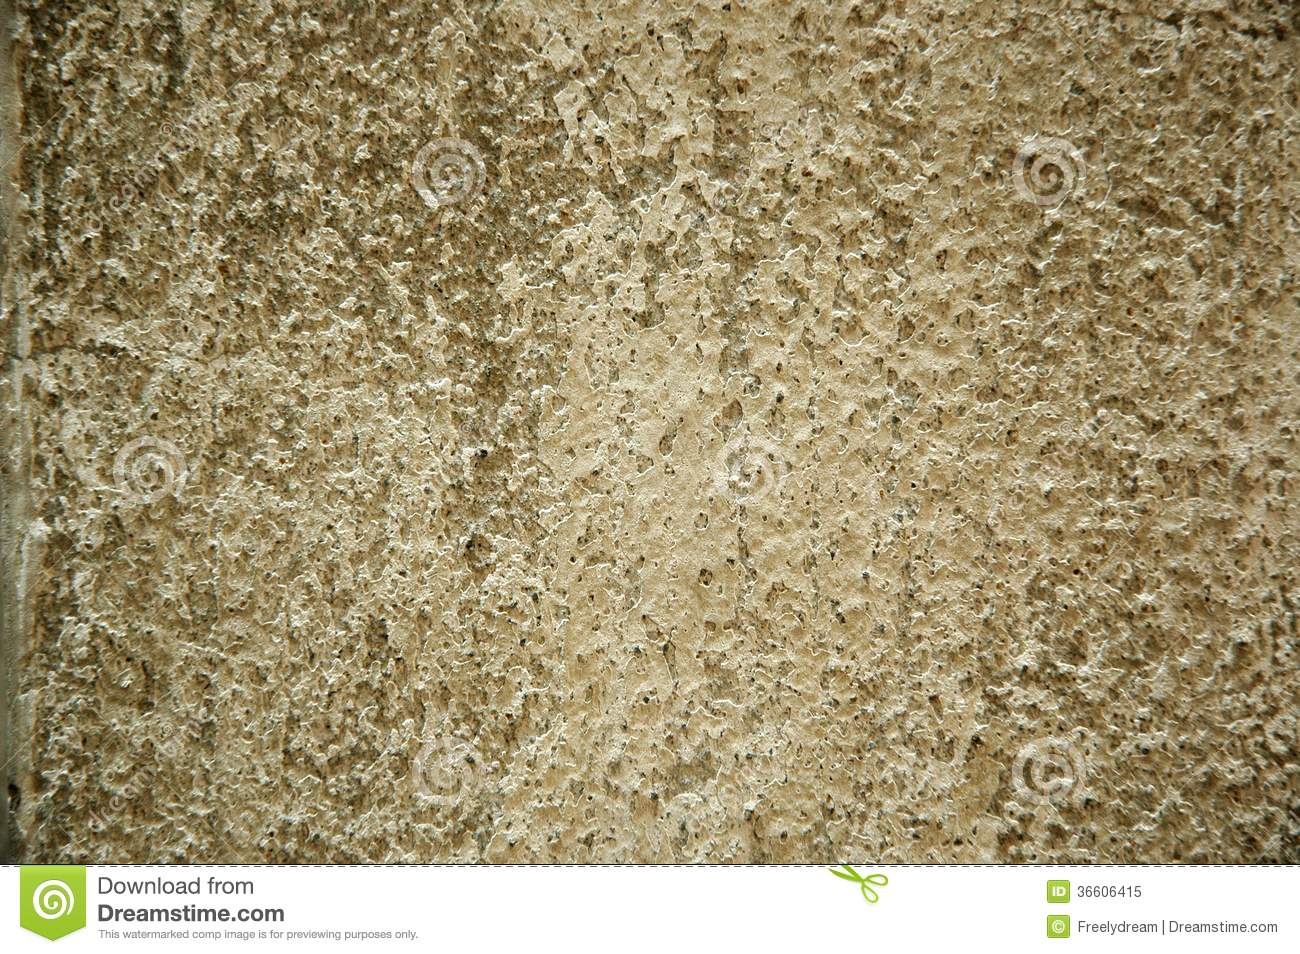 background surface stain - photo #16